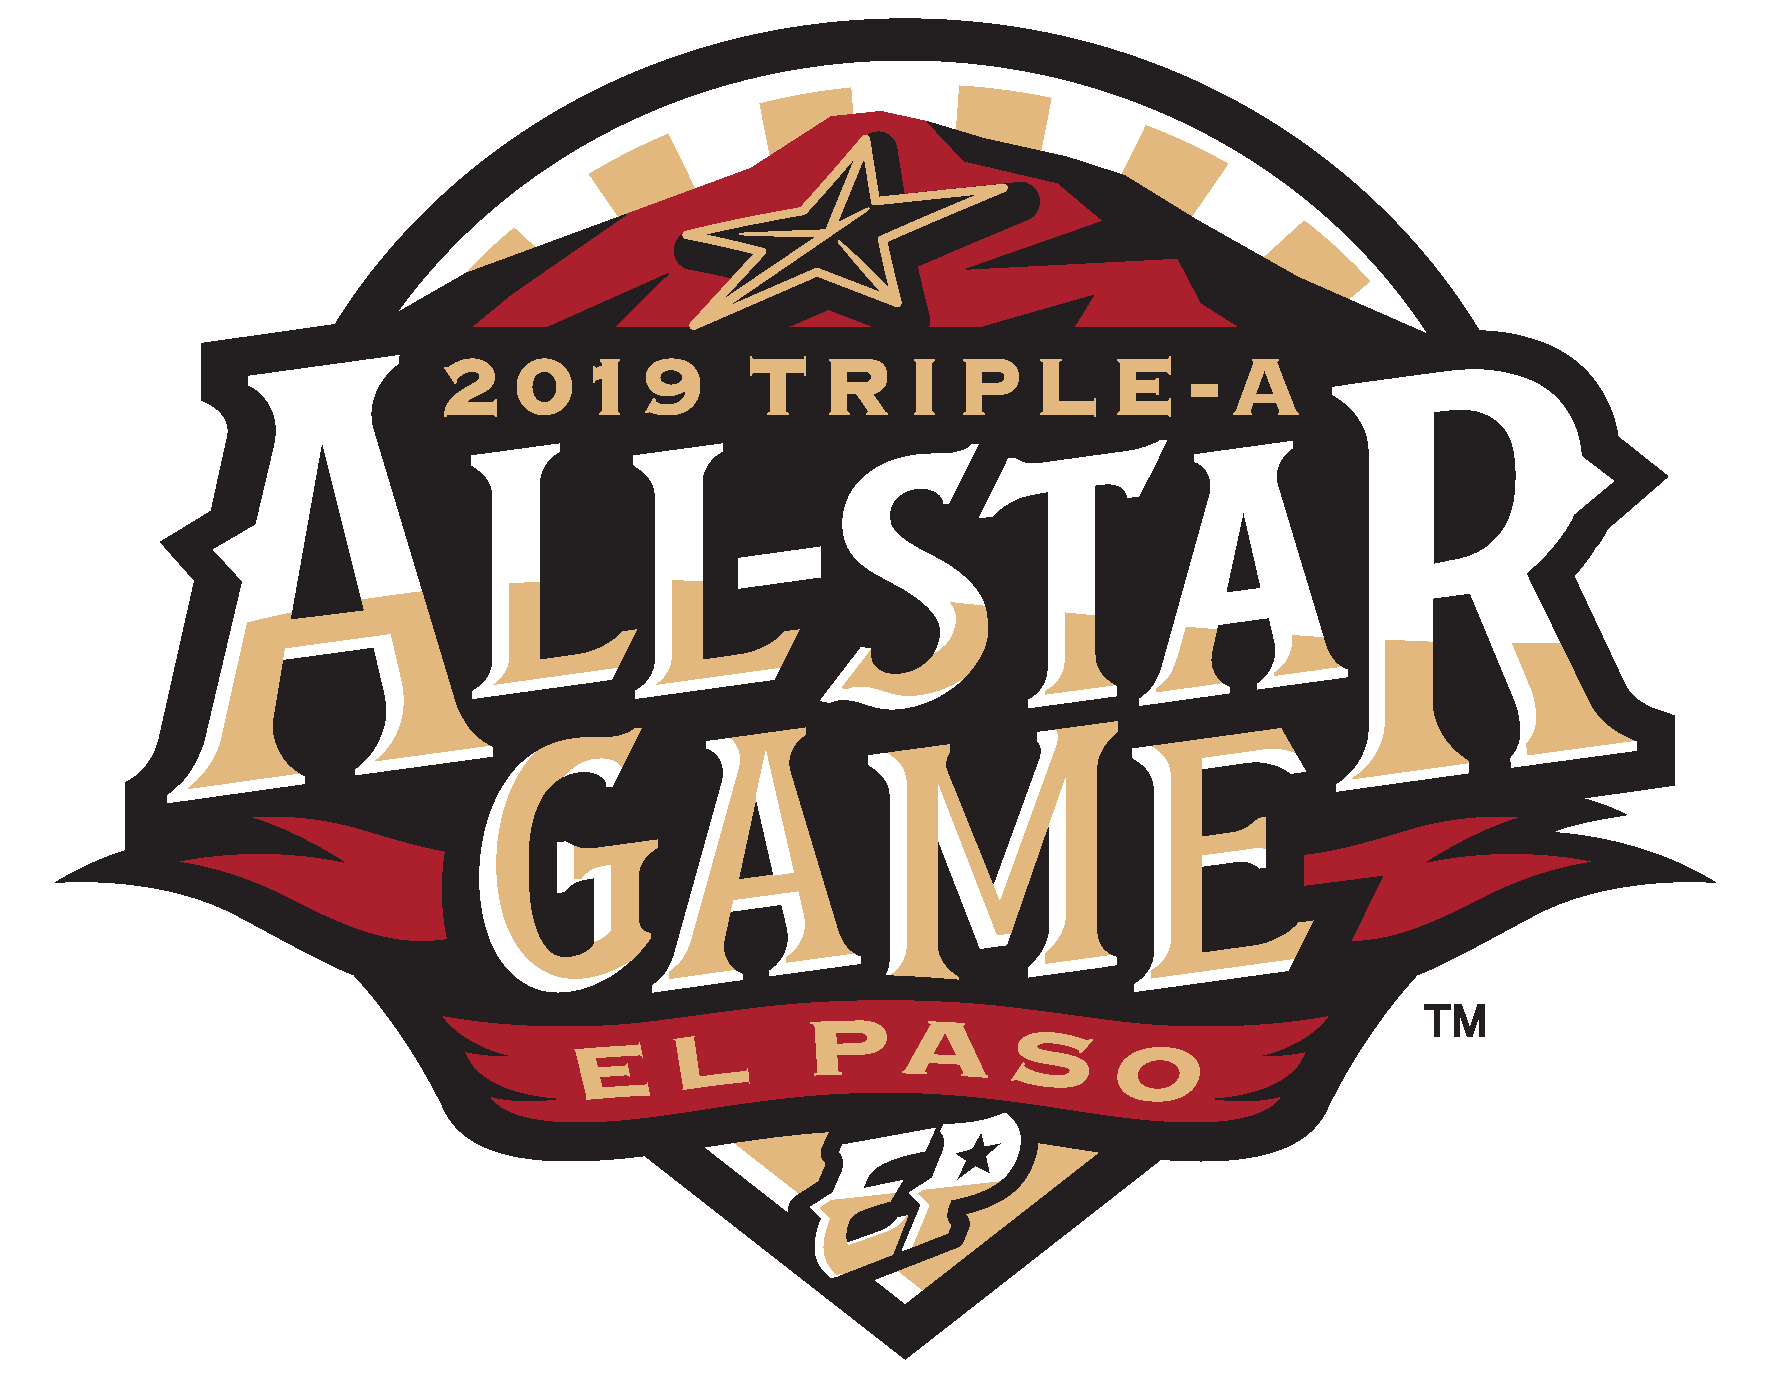 el paso to host 2019 all-star game | el paso chihuahuas news